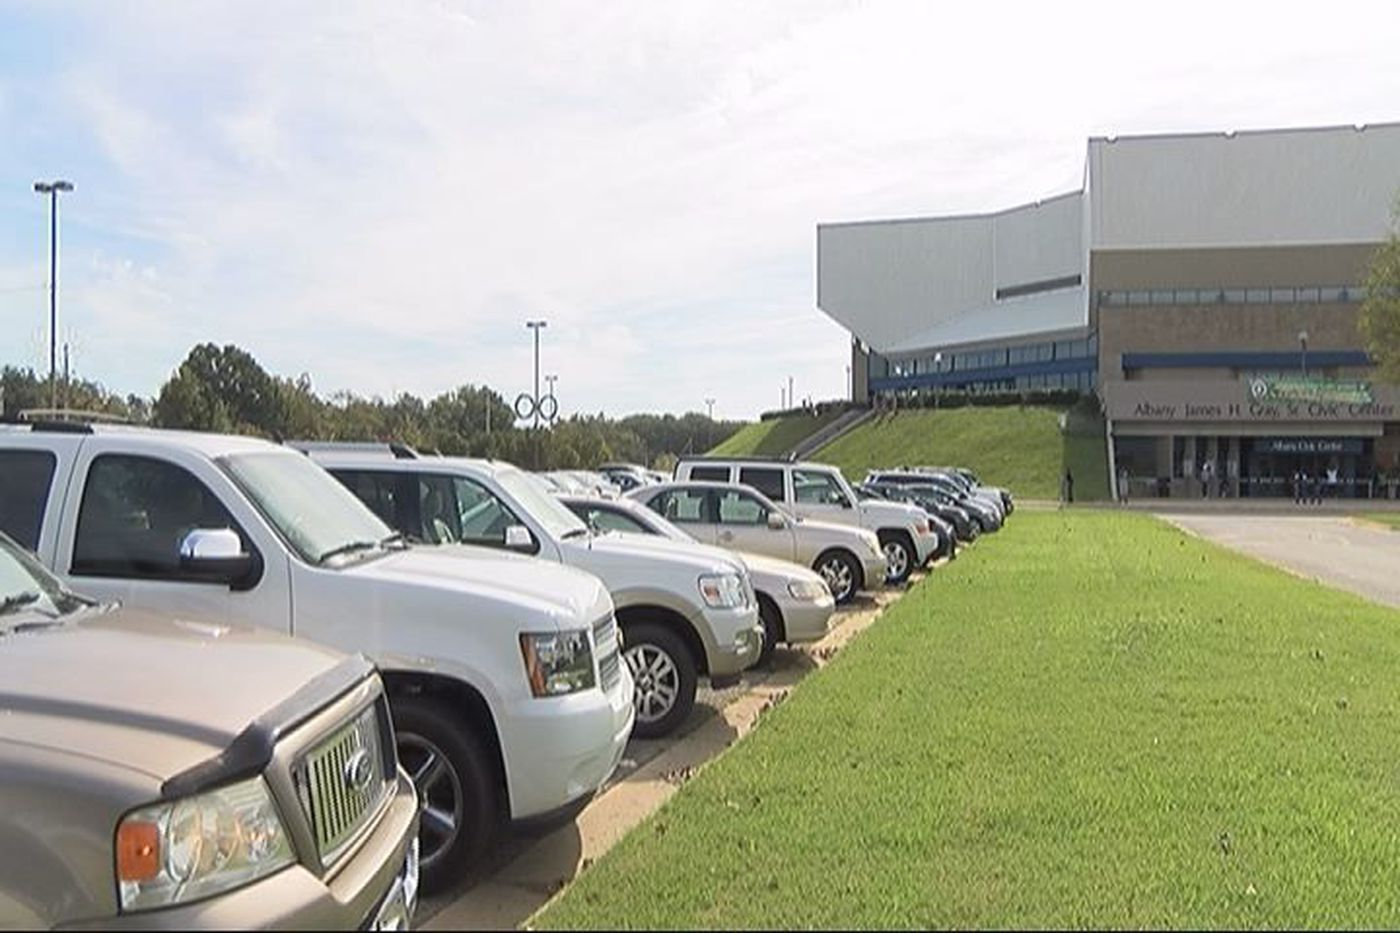 ALBANY, GA (WALB) - There's some exciting news tonight for arena football fans.